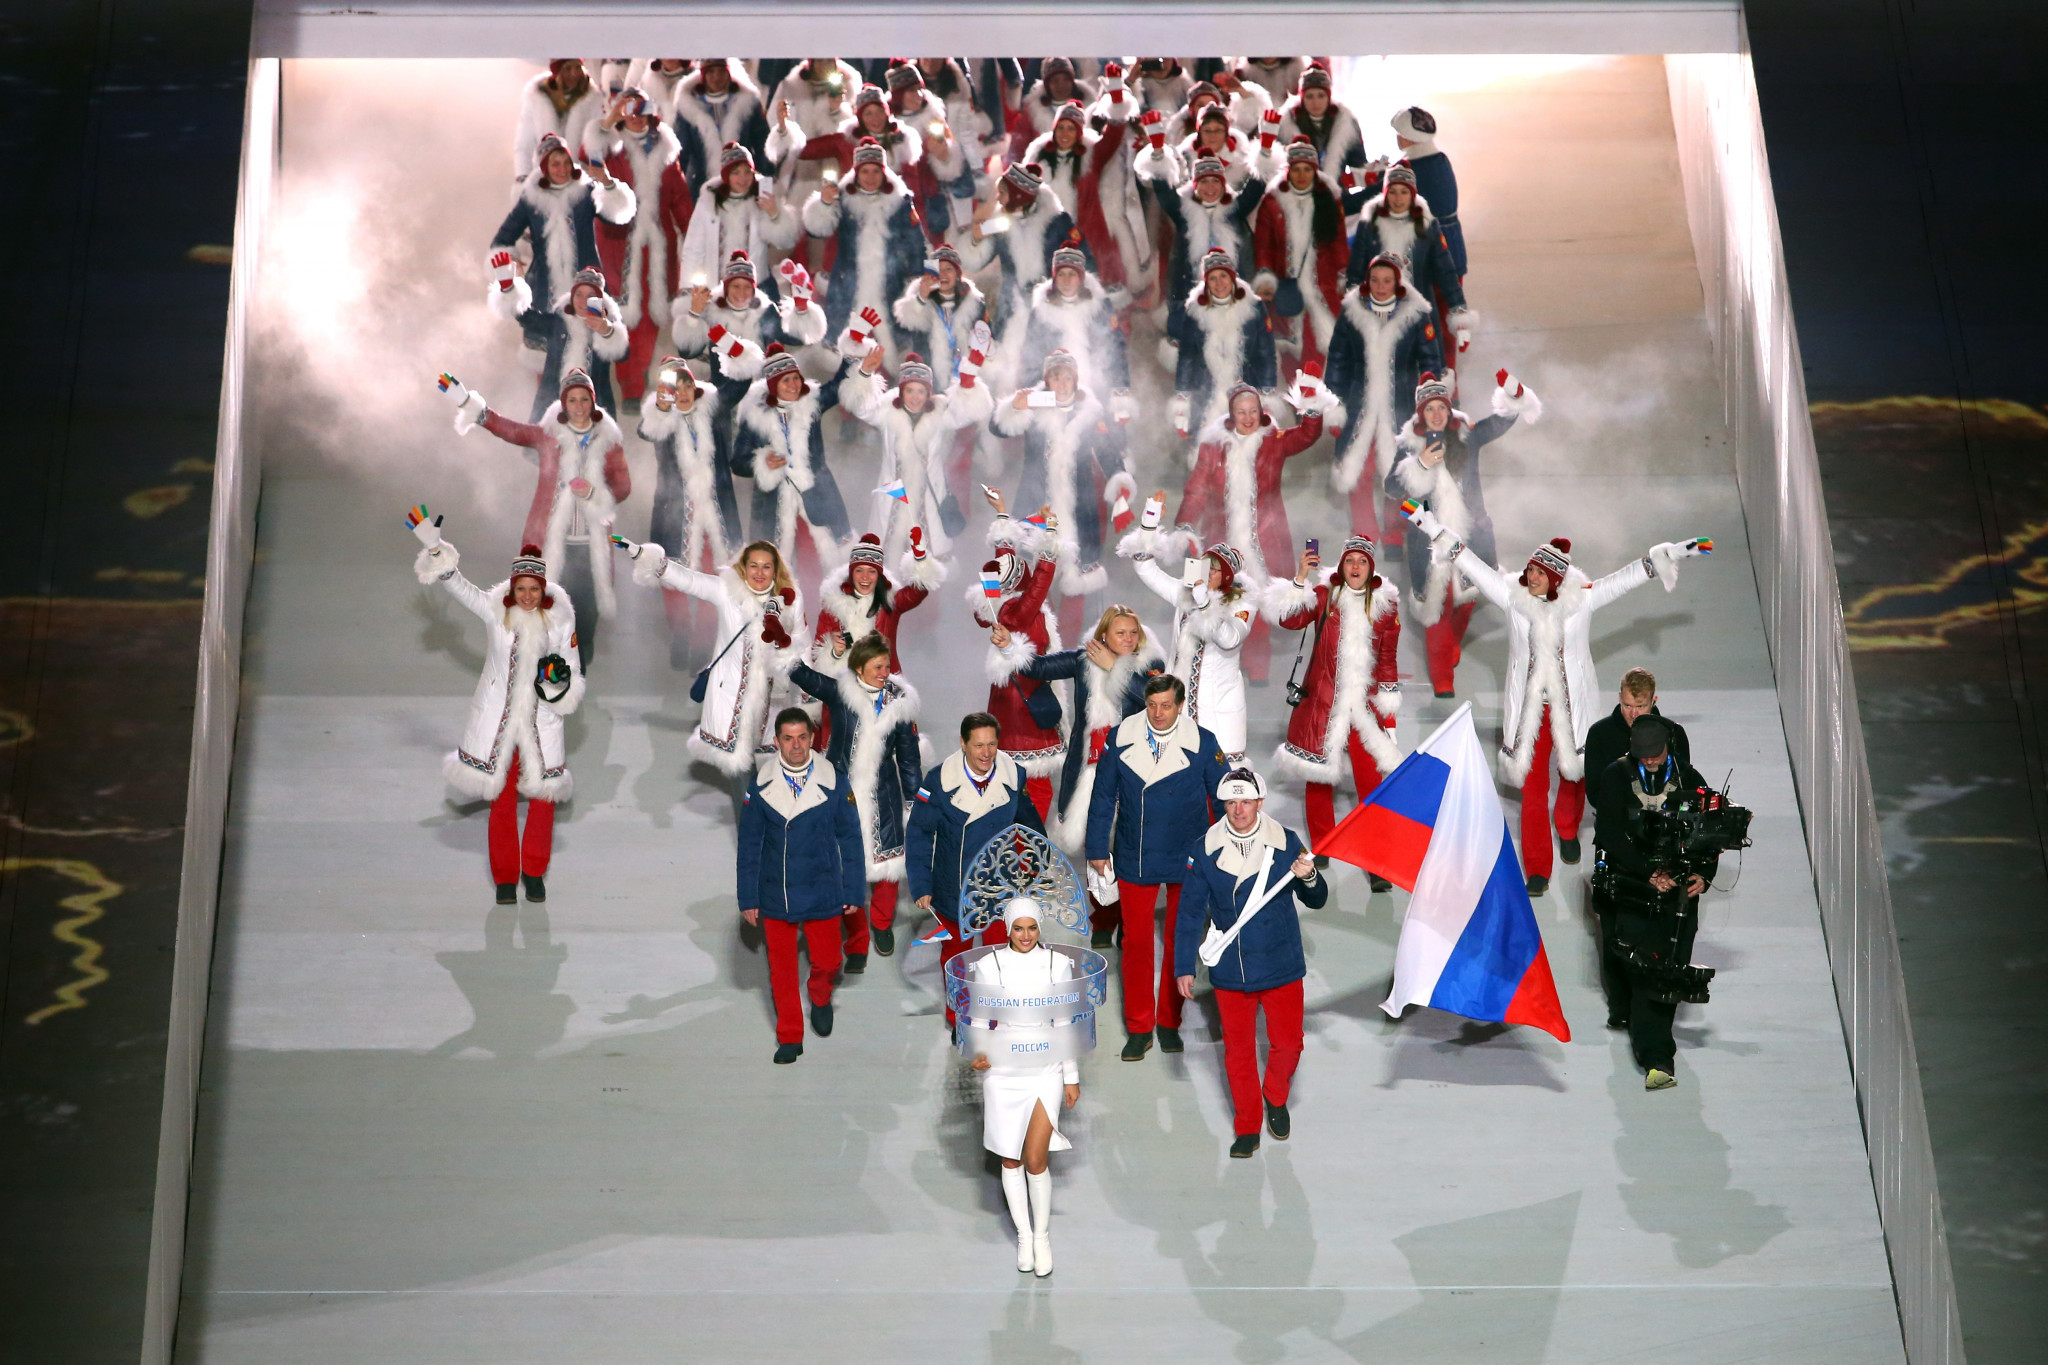 Alexander Zubkov, who has since been disqualified for doping, pictured carrying the Russian flag at the Opening Ceremony of Sochi 2014 ©Getty Images